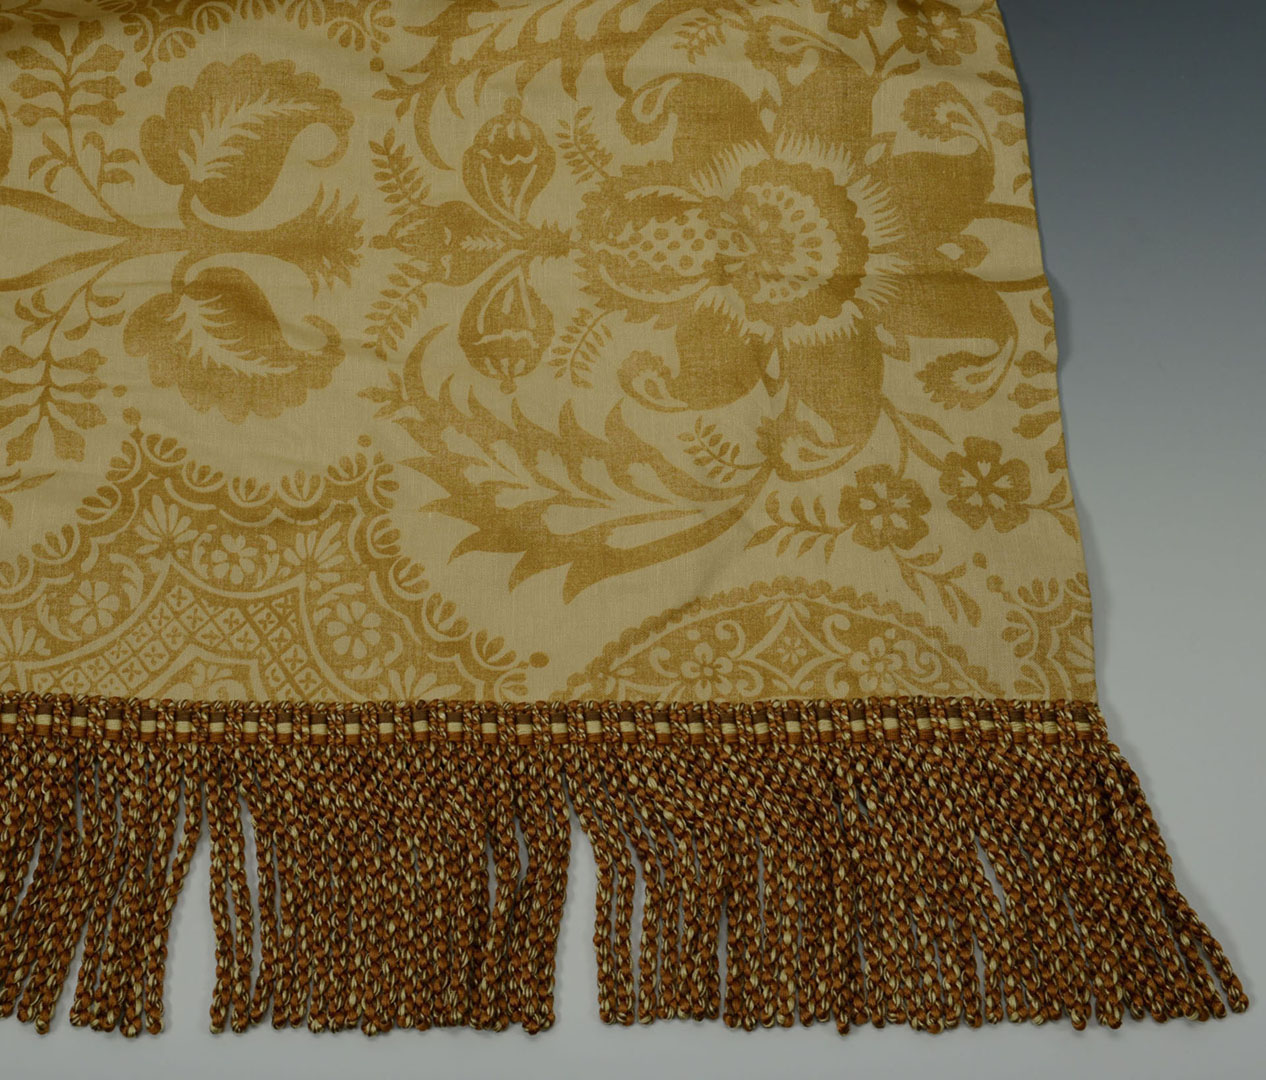 Lot 2872356: 4 Cowtan and Tout drapery panels with rods